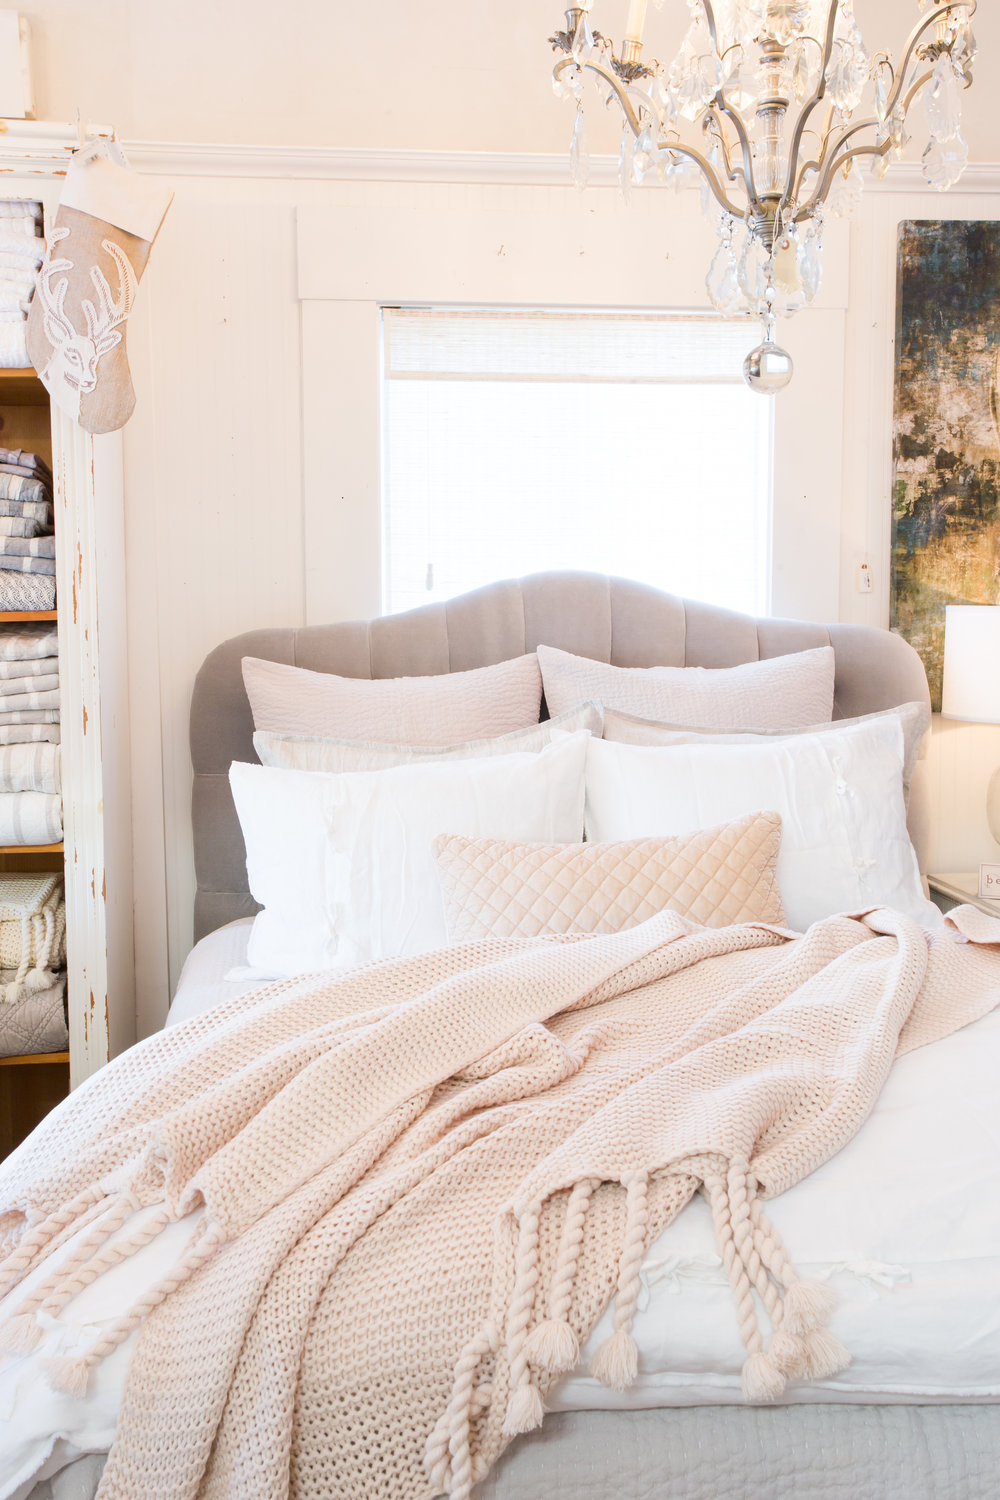 Cream bedding, blush coverlet